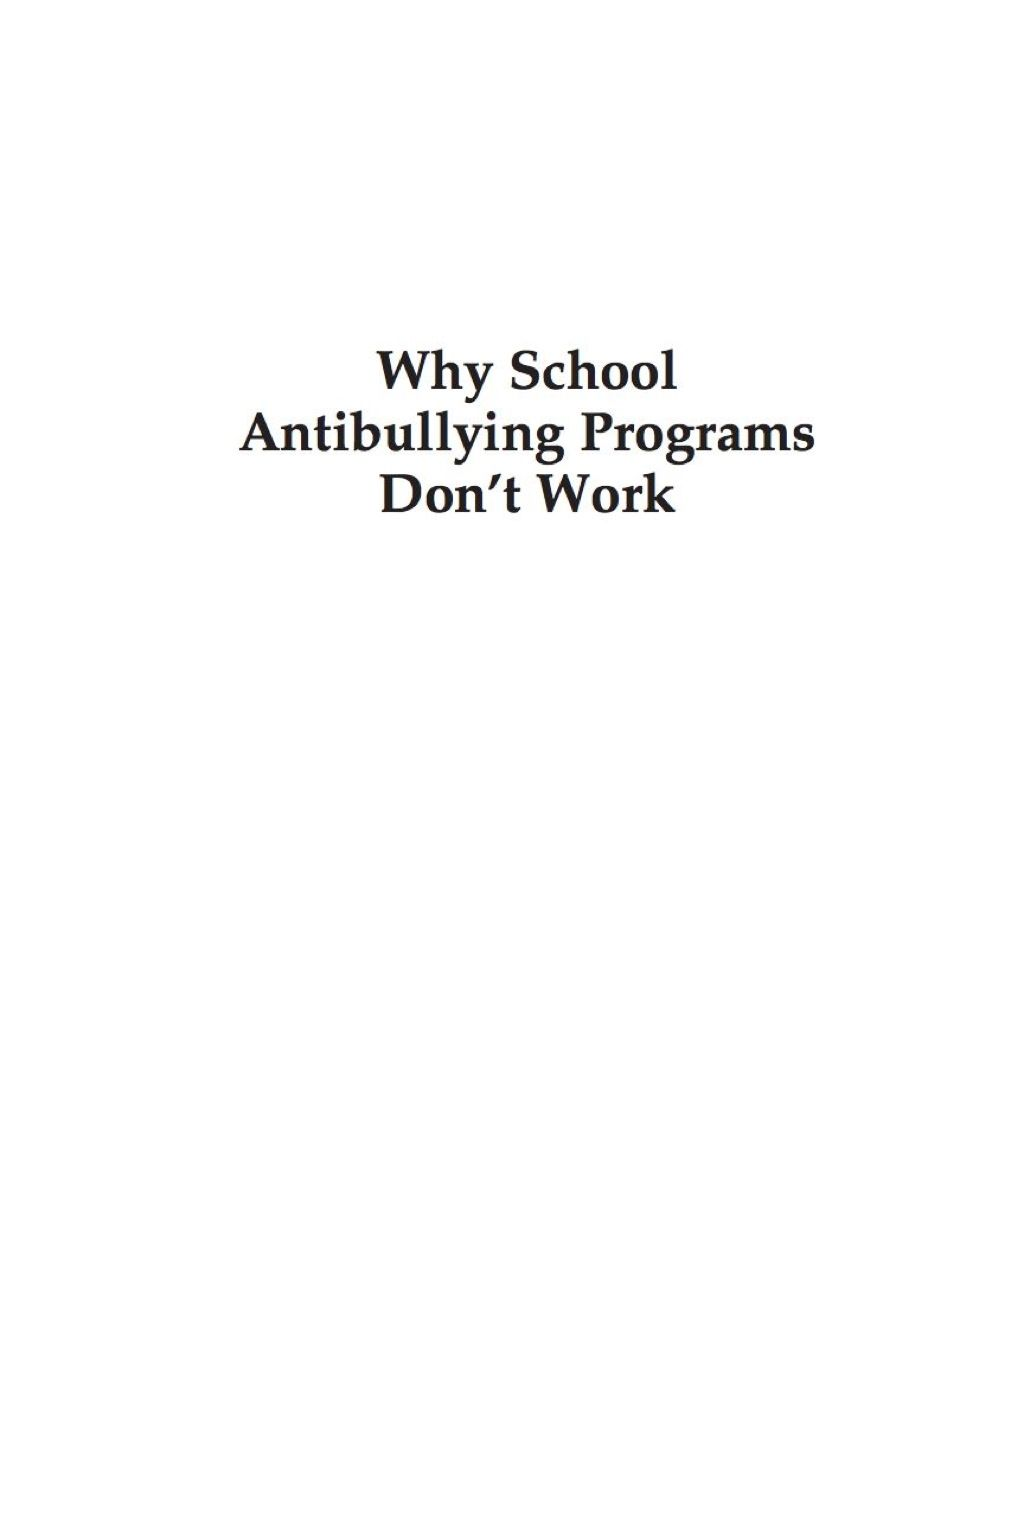 Why School Anti-Bullying Programs Dont Work